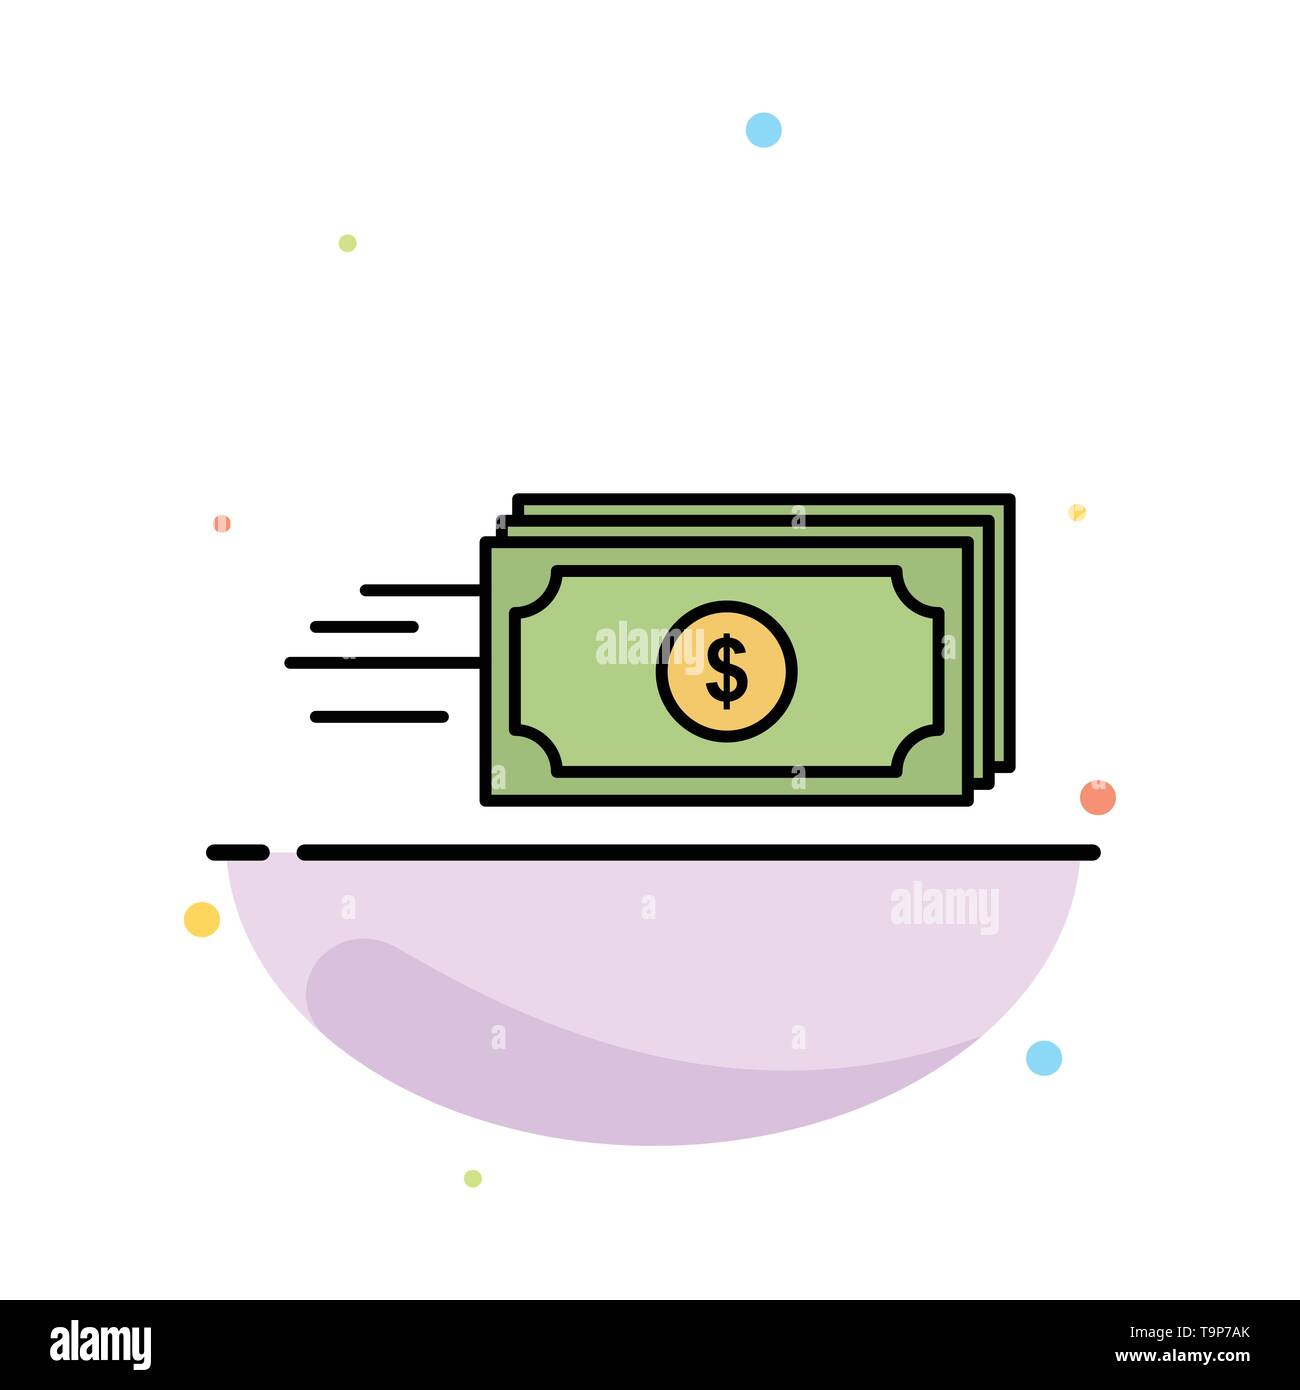 Dollar, Business, Flow, Money, Currency Abstract Flat Color Icon Template - Stock Image